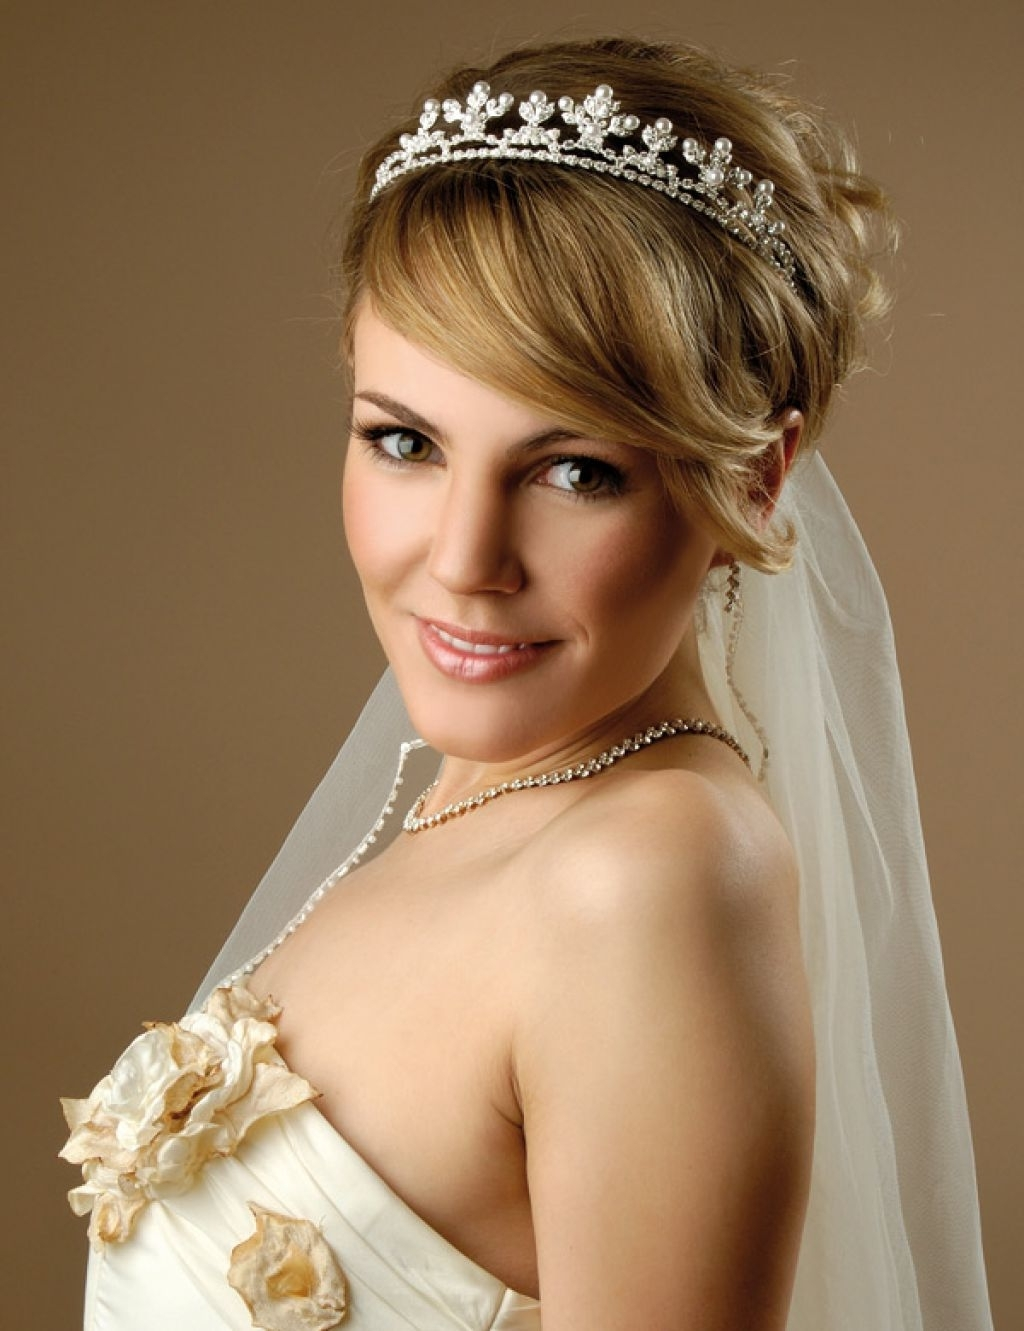 Short Hair Wedding Updos With Veil – The Newest Hairstyles Regarding Wedding Updo Hairstyles With Veil (View 4 of 15)